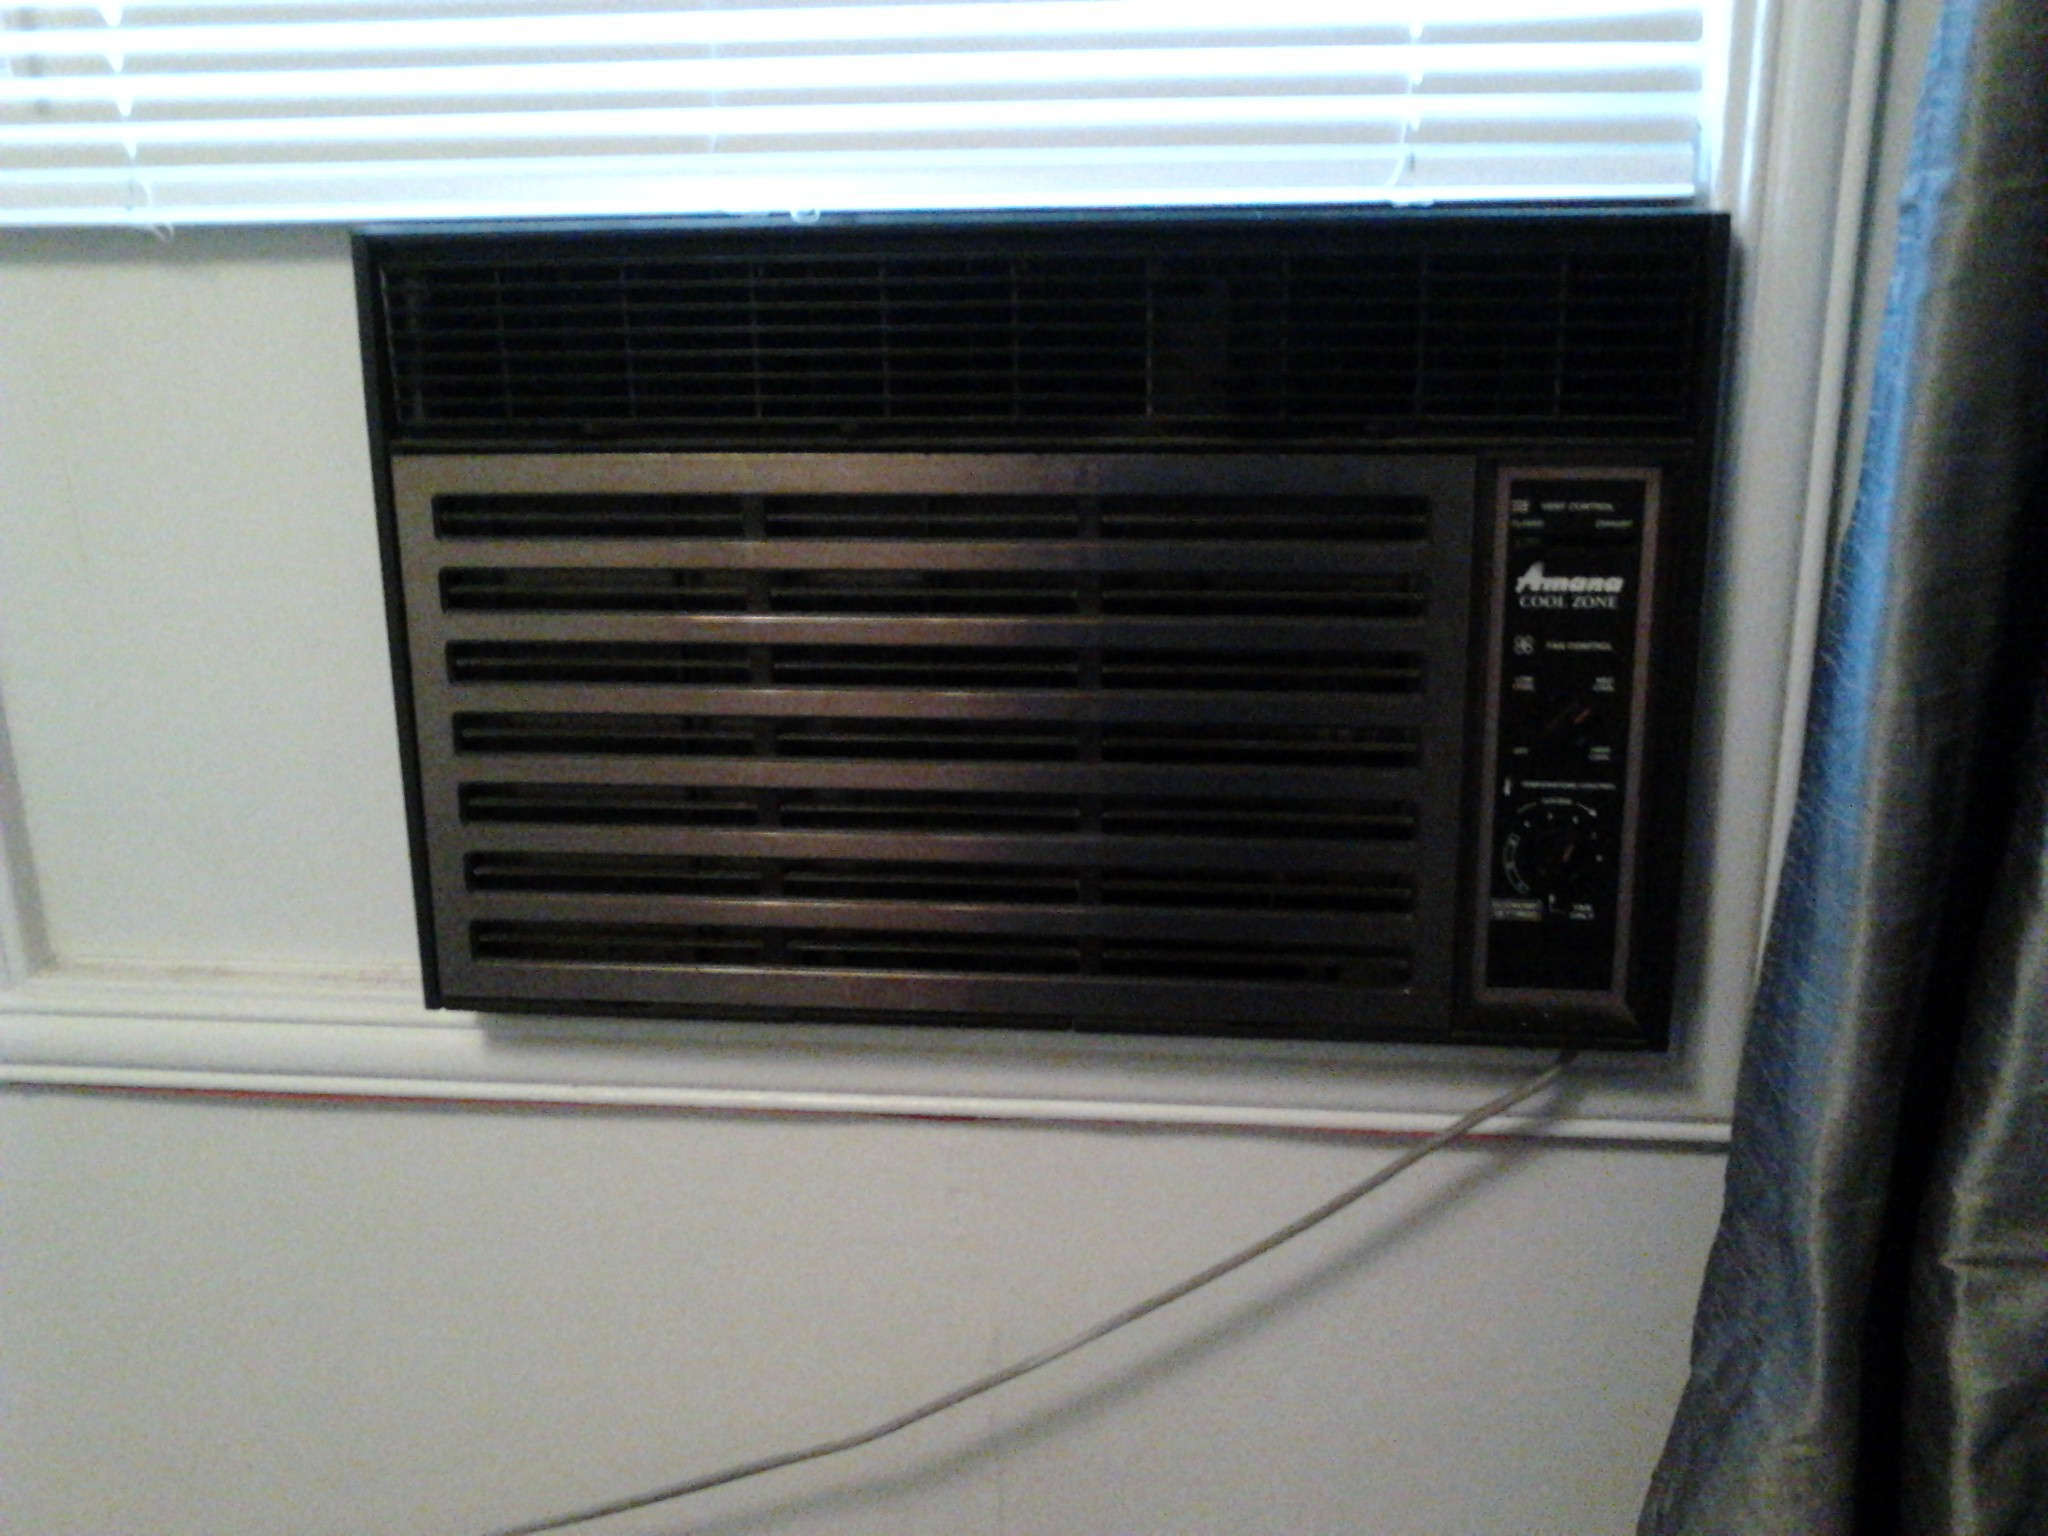 window air conditioner heater amana heat pump air 416a8a